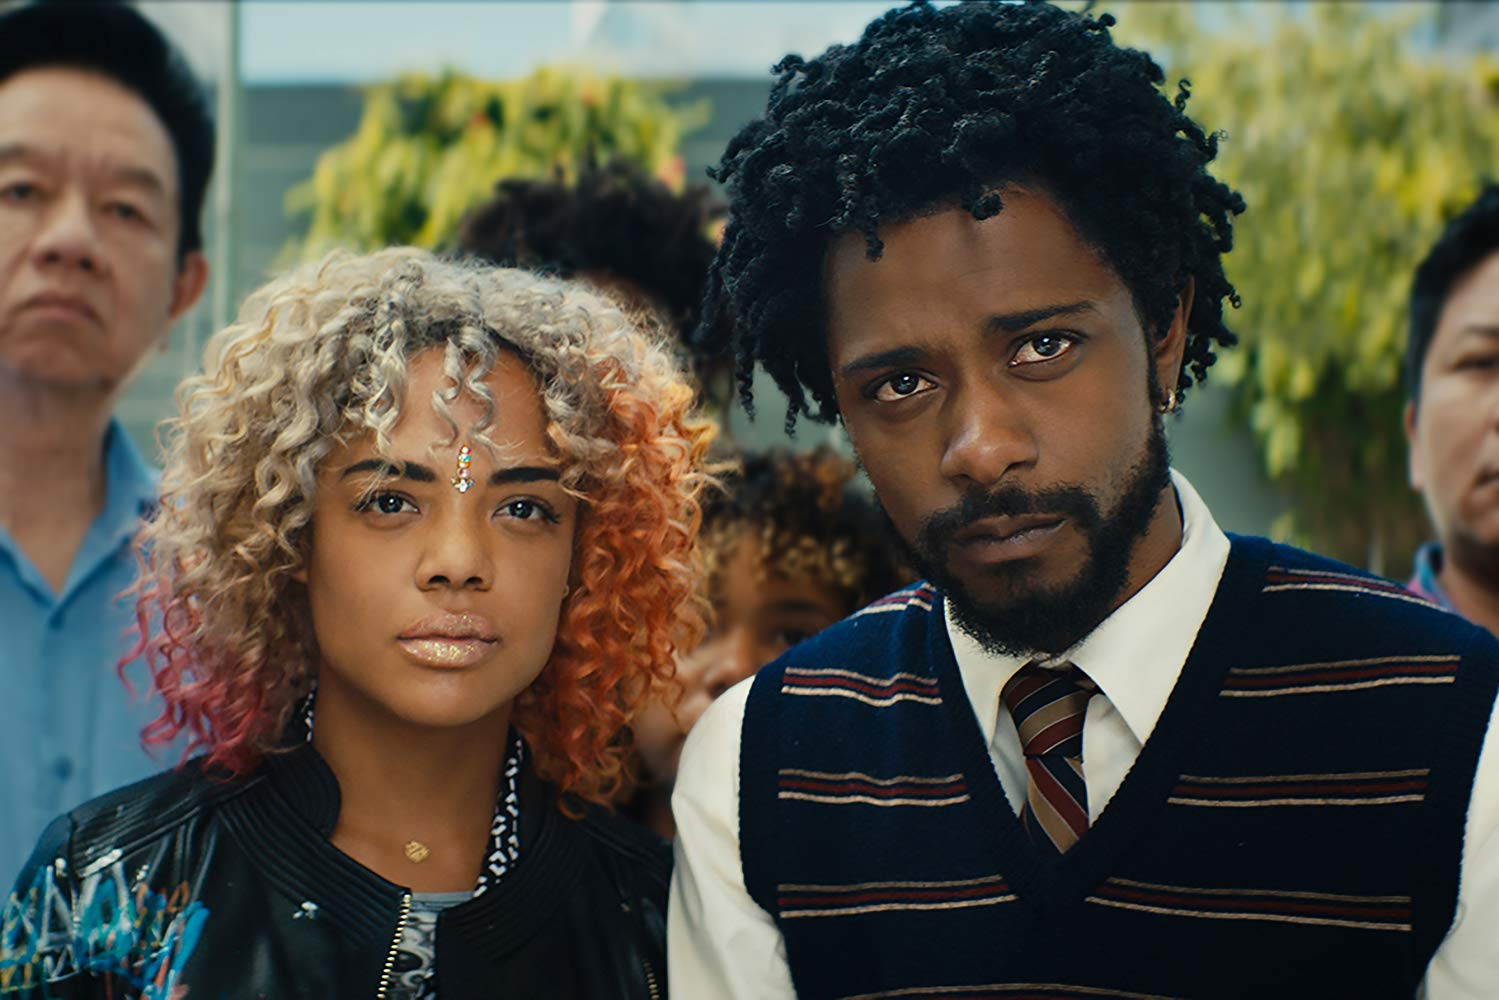 best ovies of 2018 ranking of cultural hater